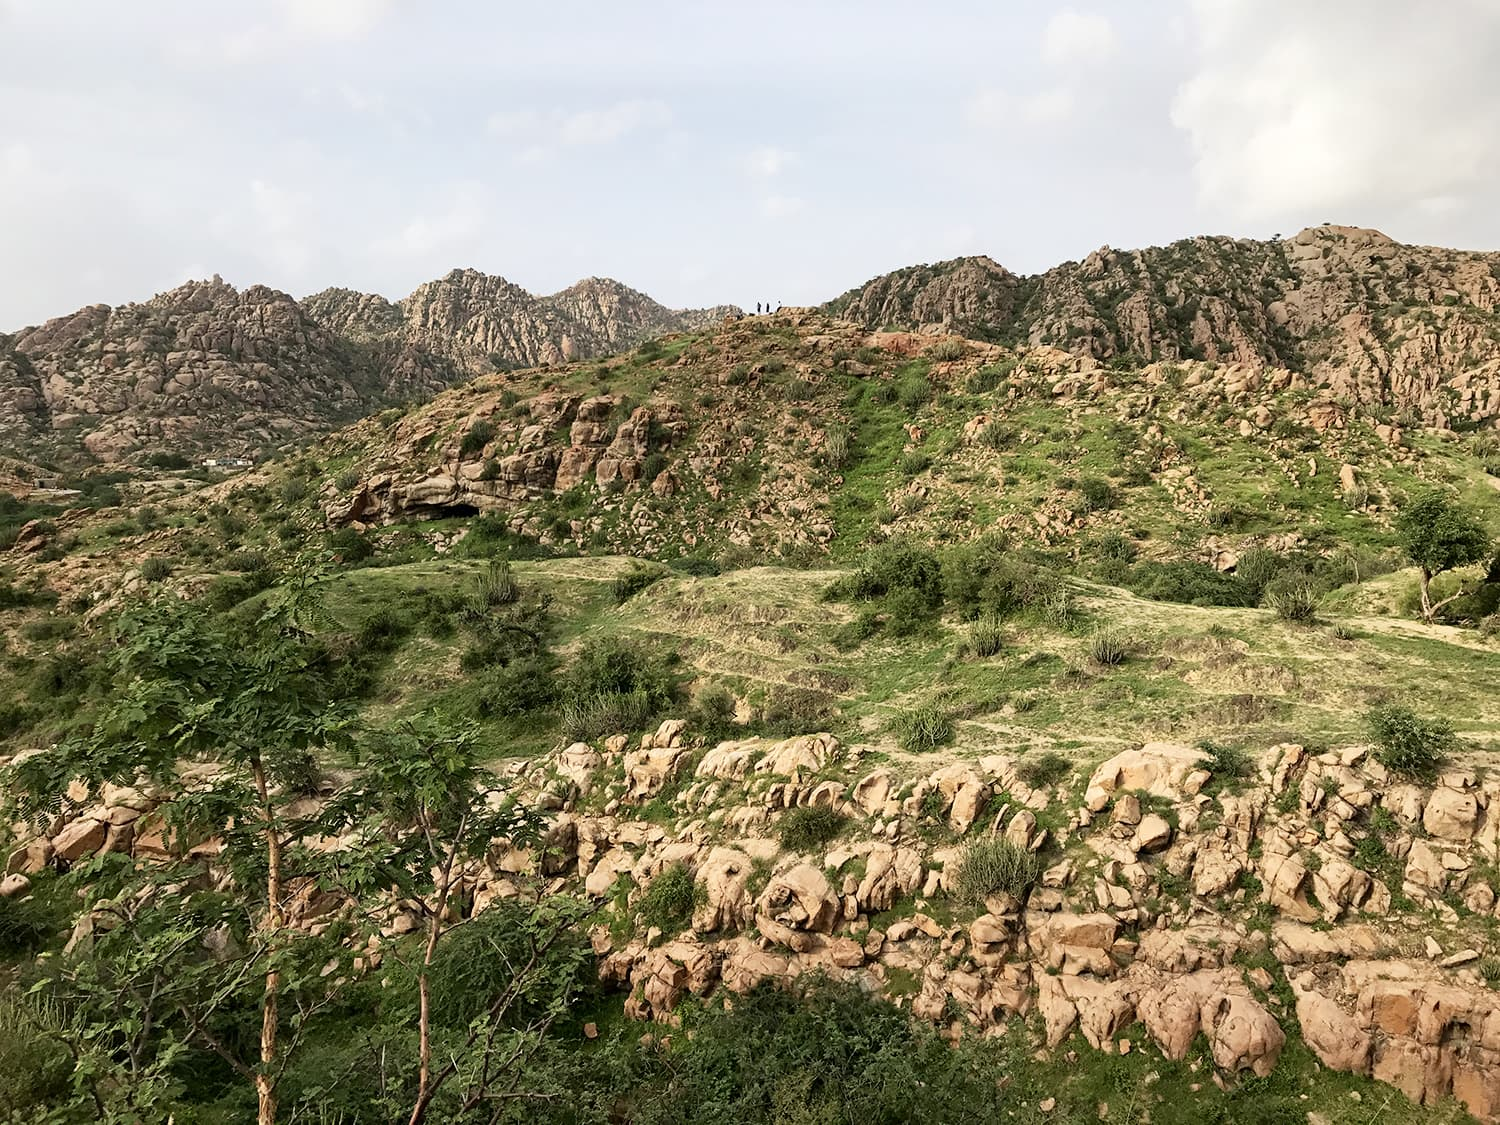 A shot of the Karoonjhar ranges, early afternoon.